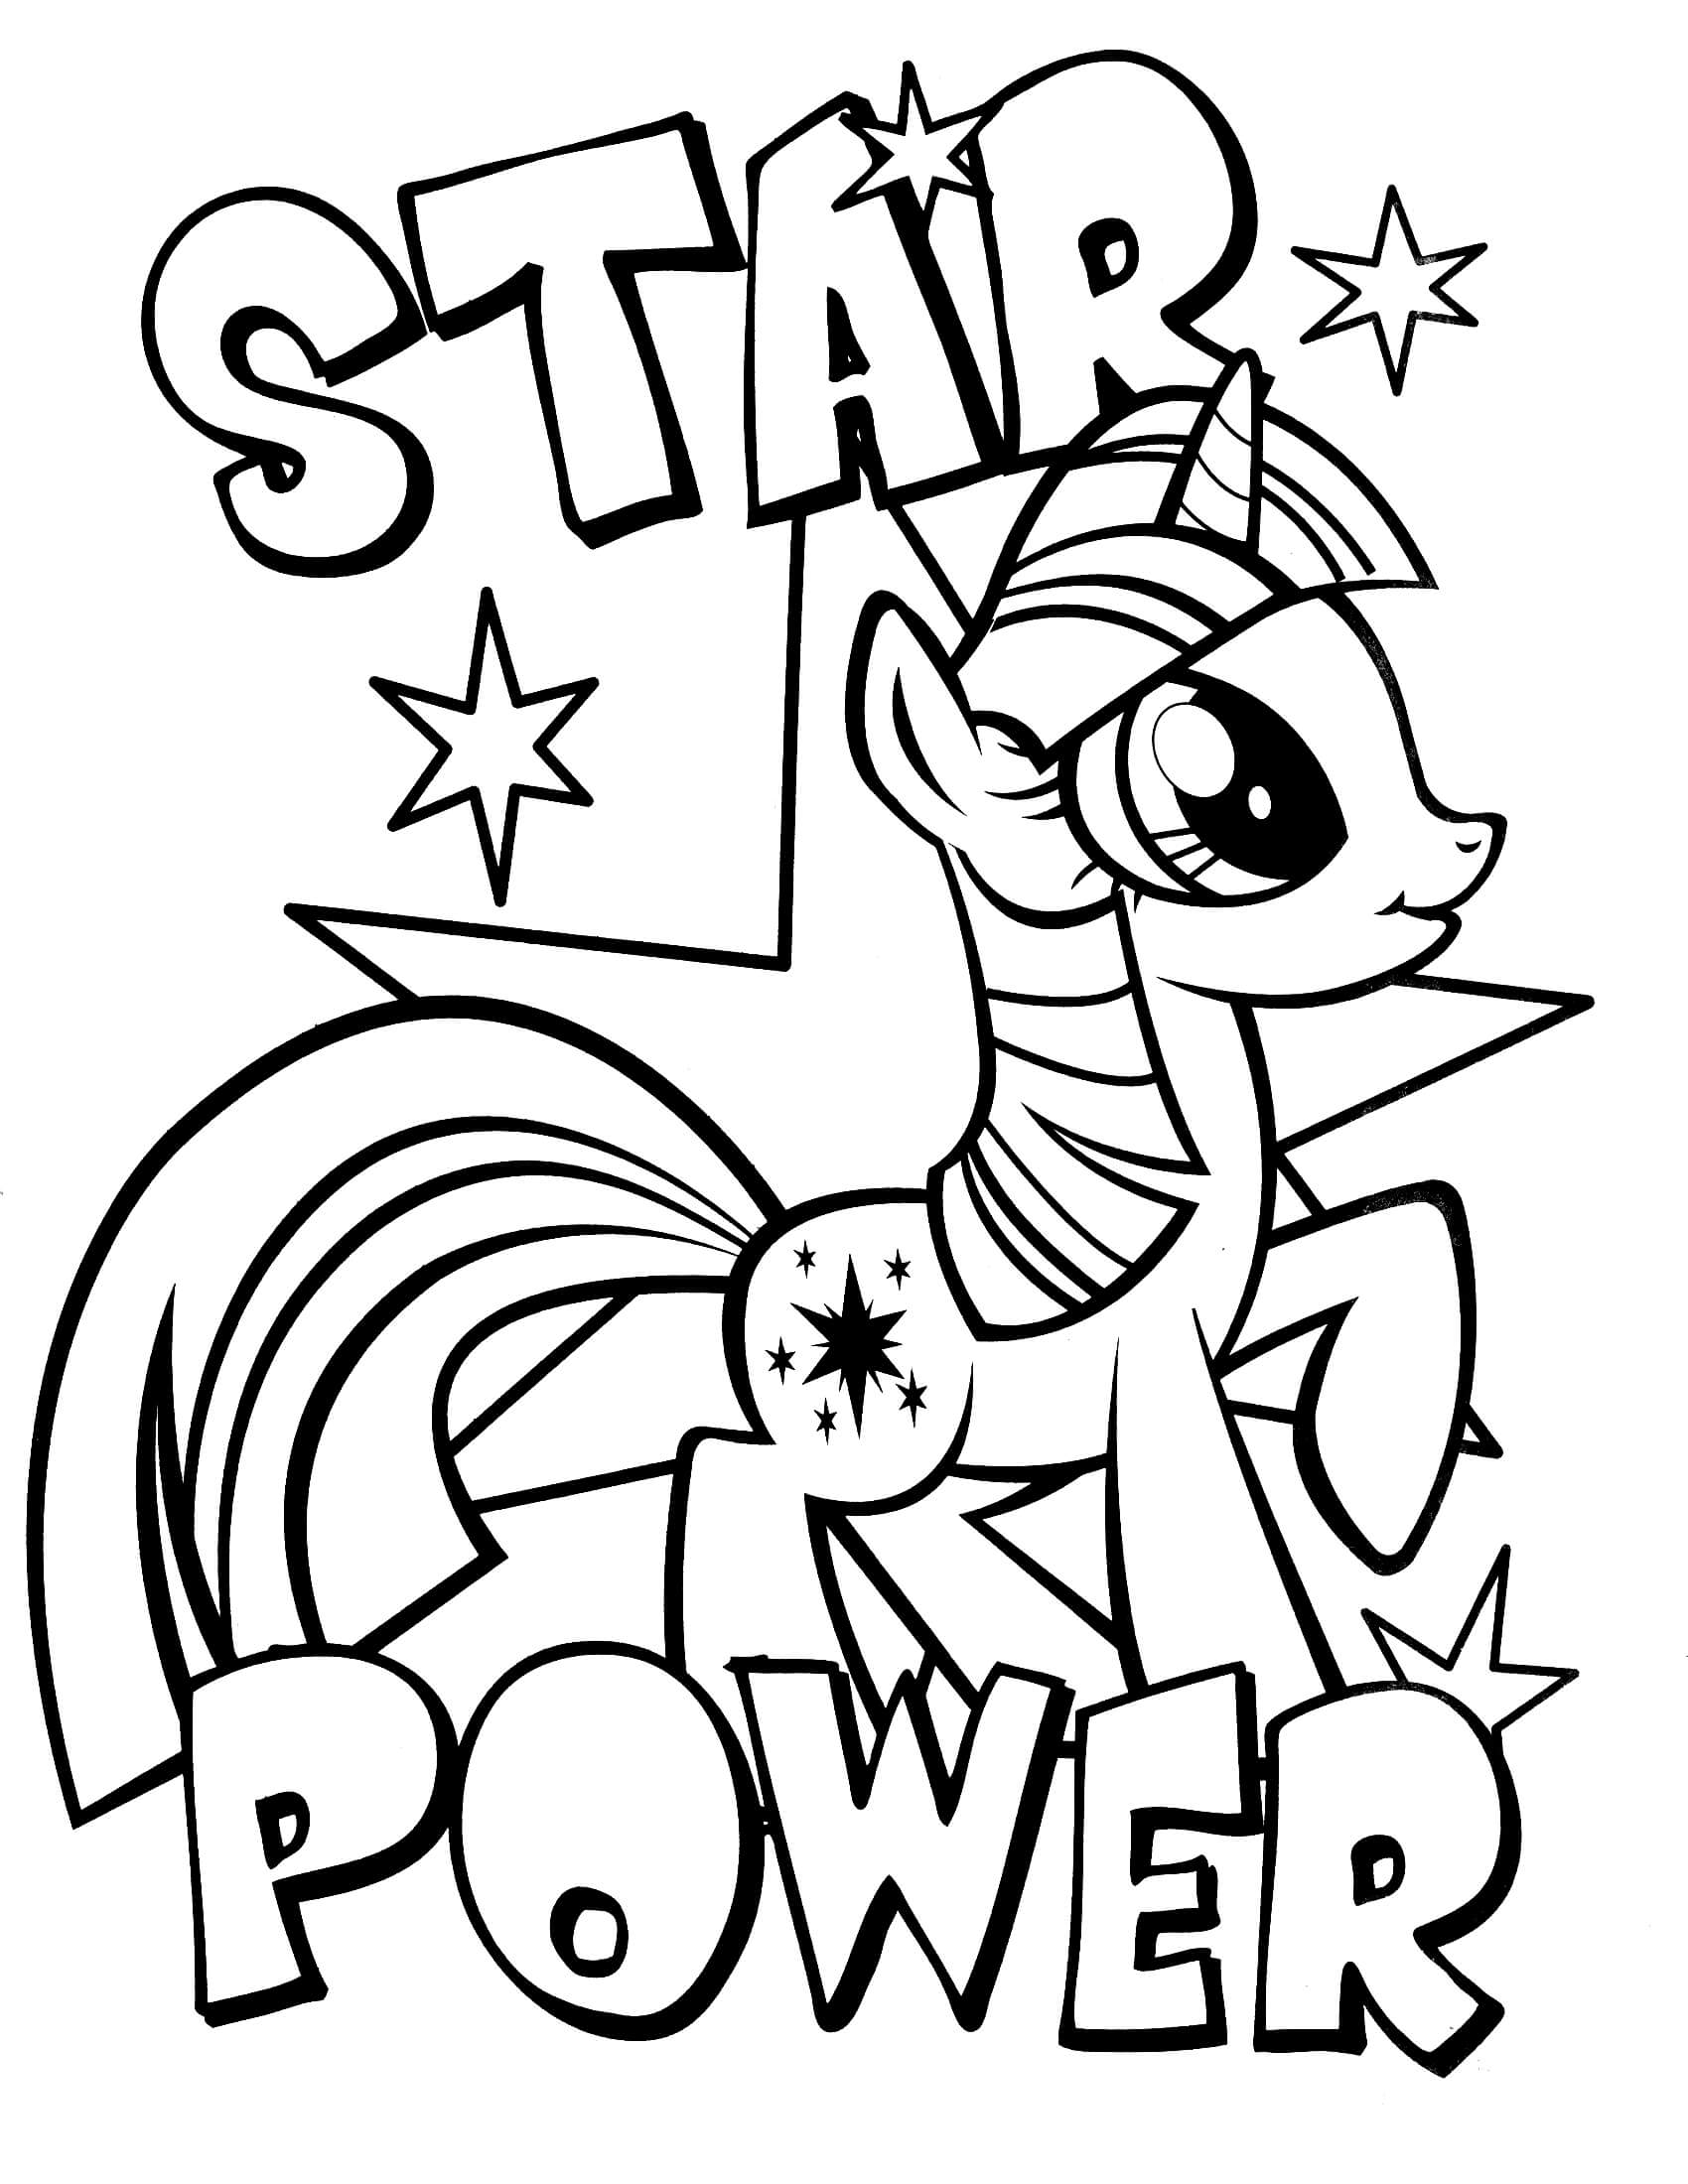 my little pony coloring images free printable my little pony coloring pages for kids pony coloring images little my